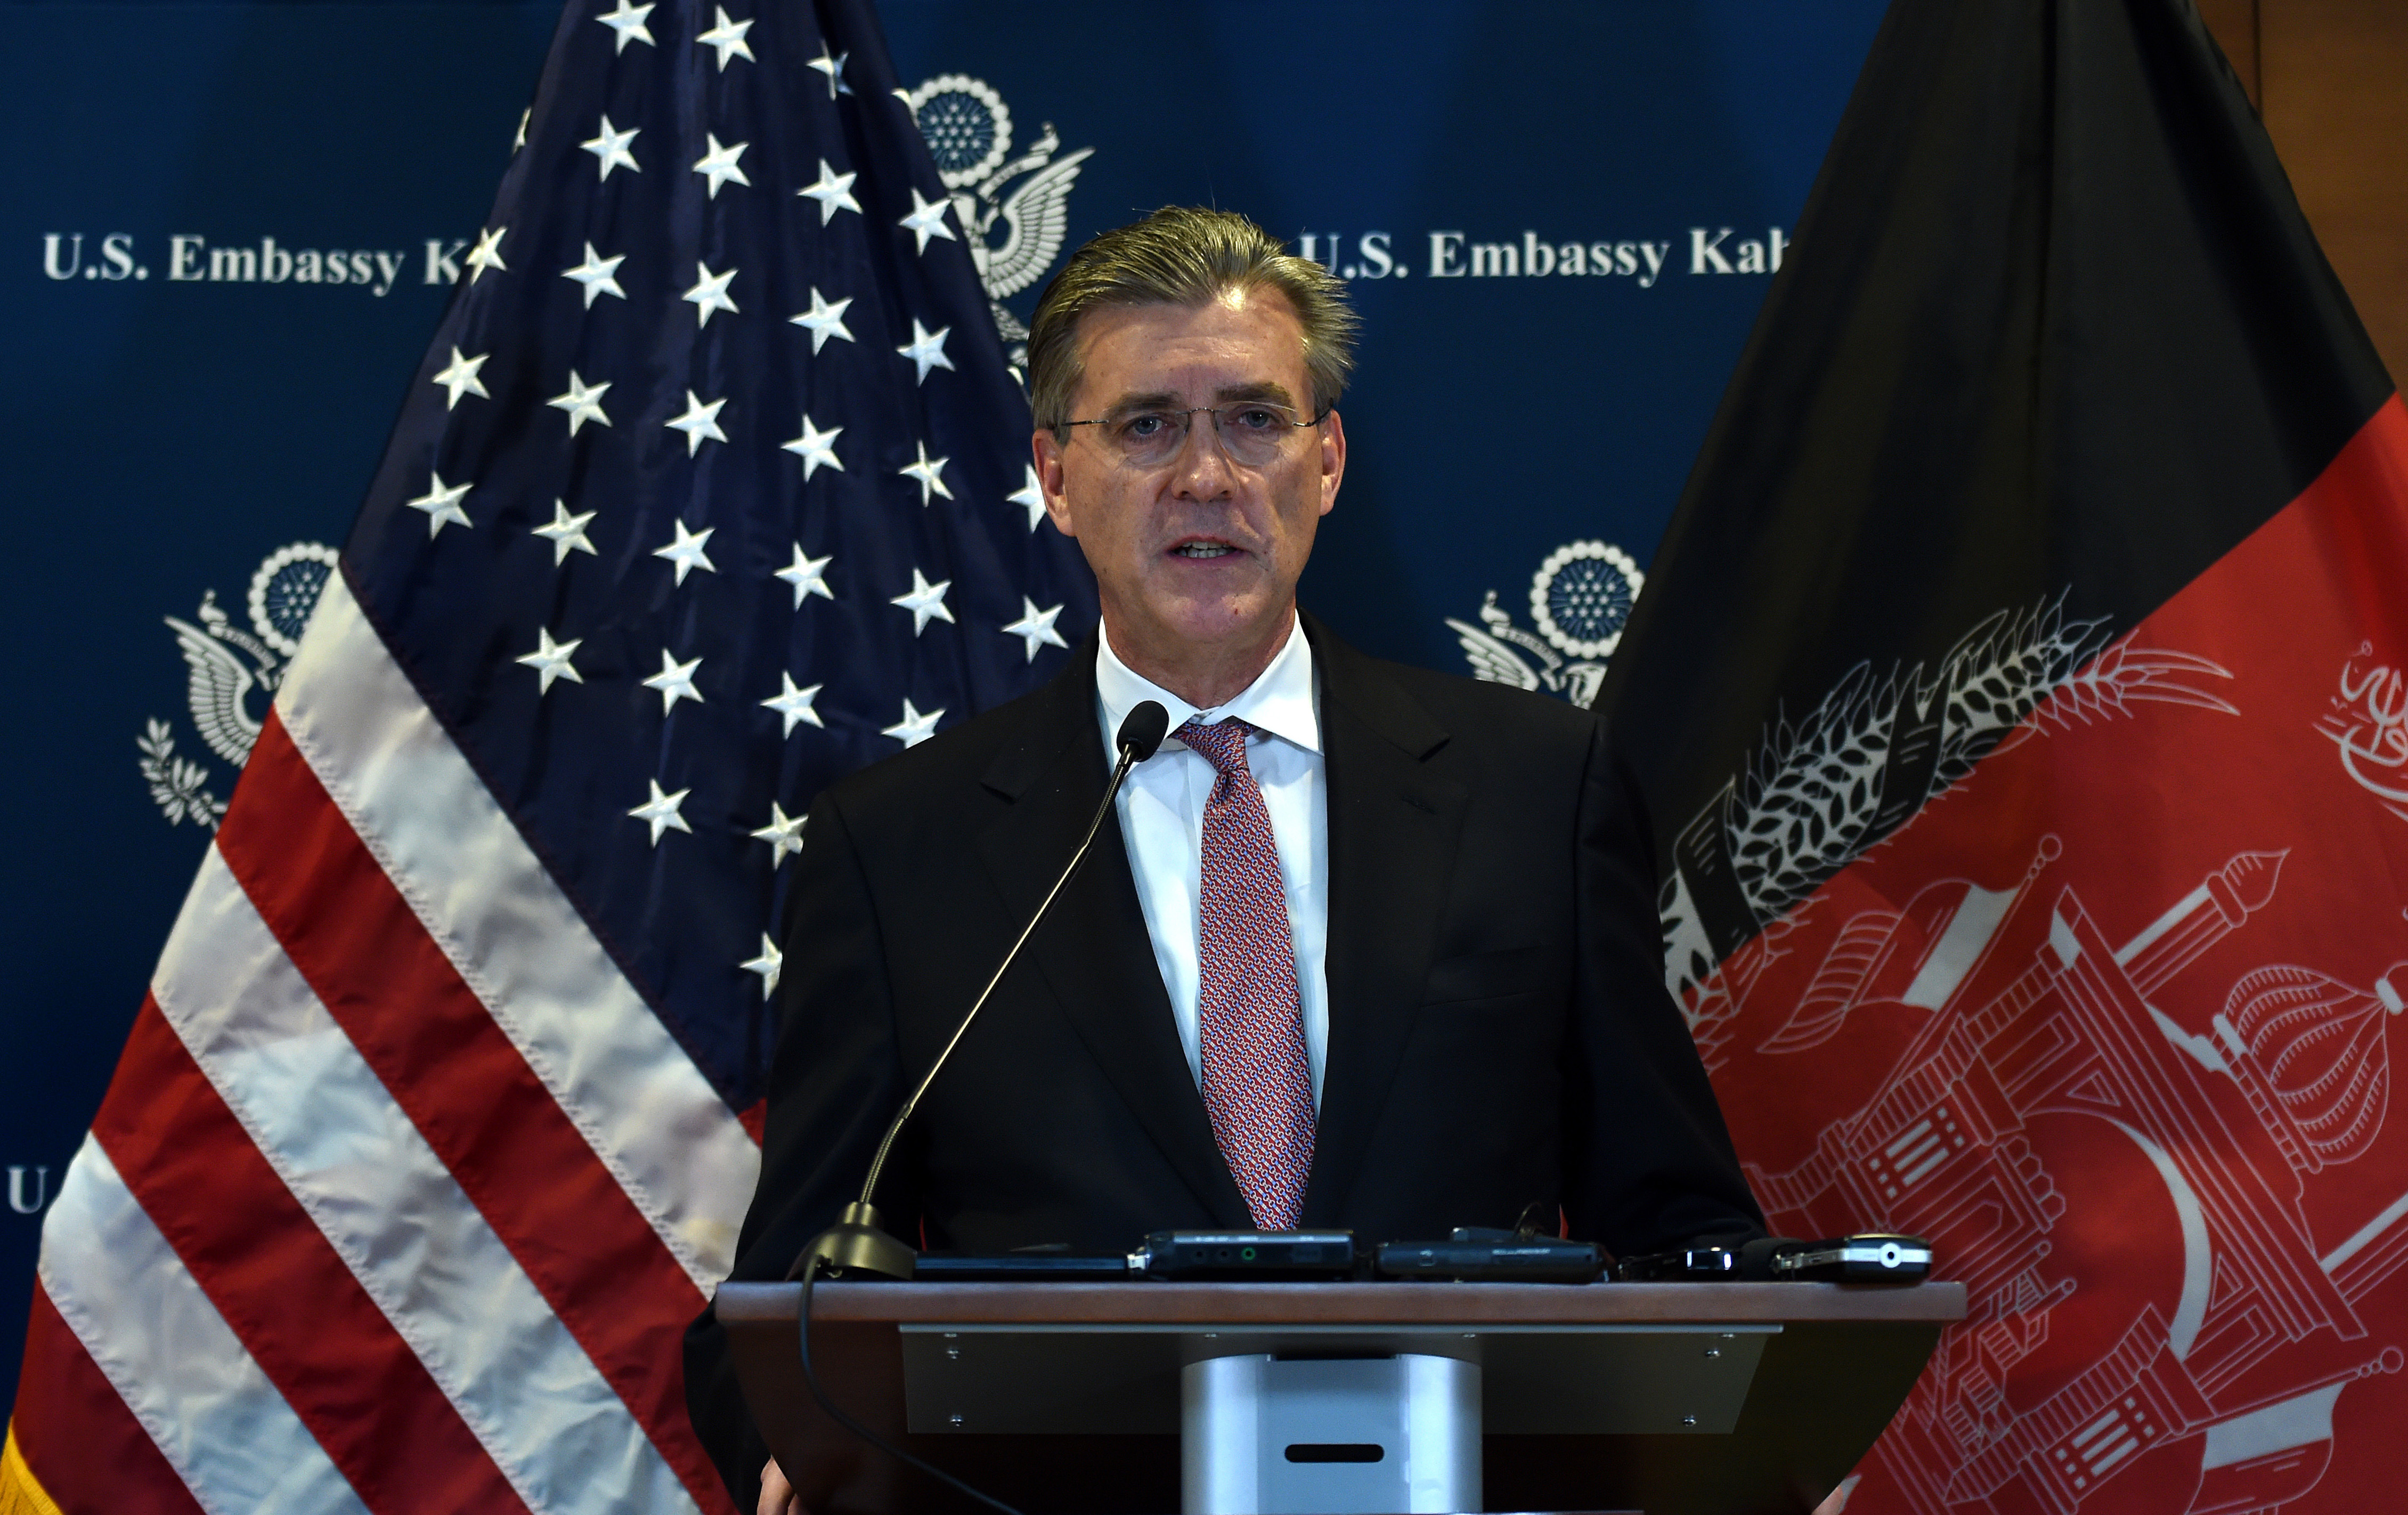 US Special Representative for Afghanistan and Pakistan, Ambassador Richard Olson speaks during a press conference at the US Embassy in Kabul, Dec. 6, 2015.